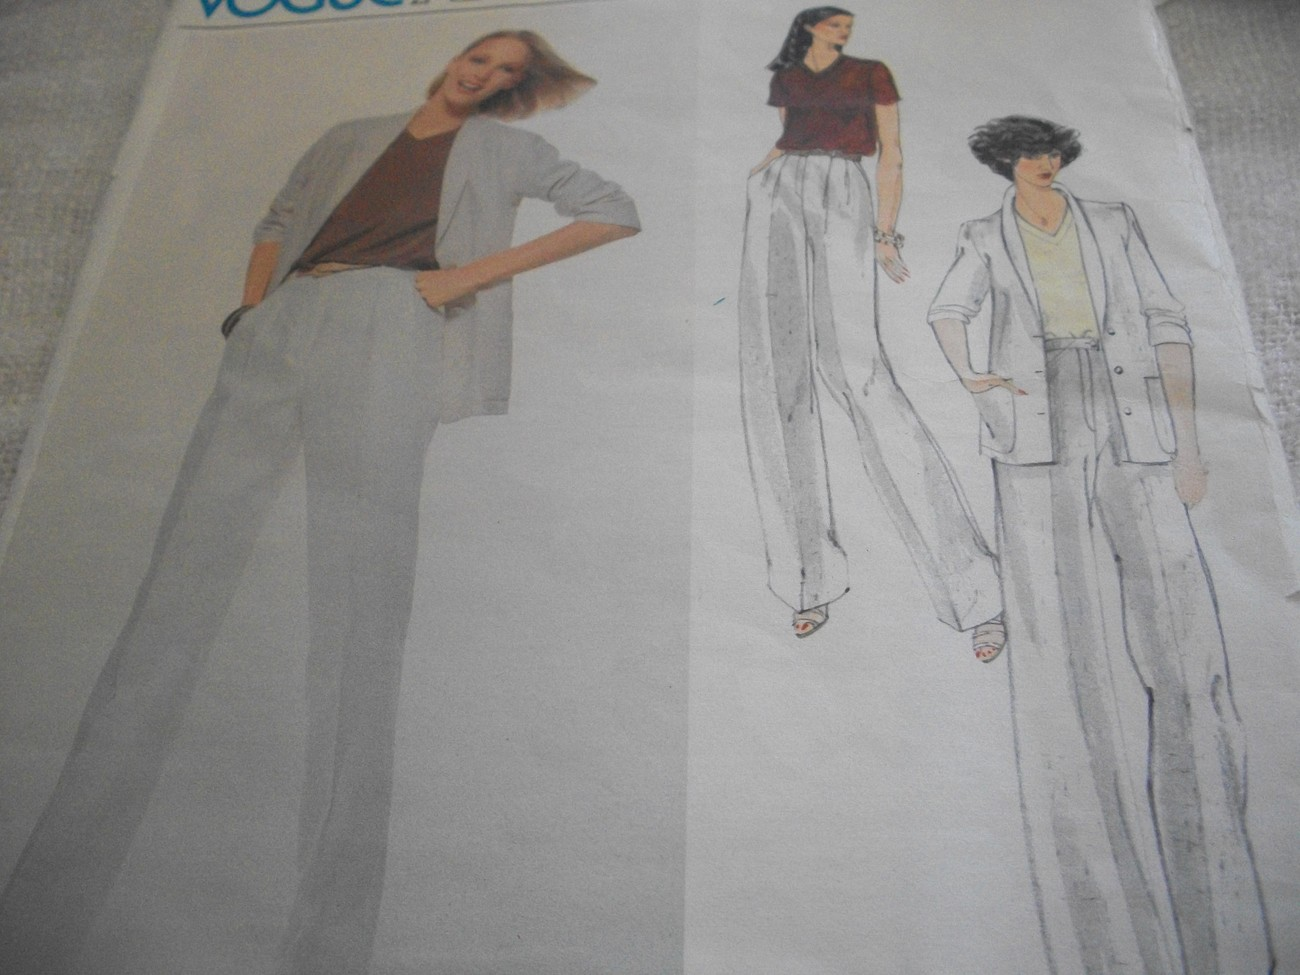 Primary image for Vogue Calvin Klein Misses' Jacket, Blouse & Pants Pattern 1885